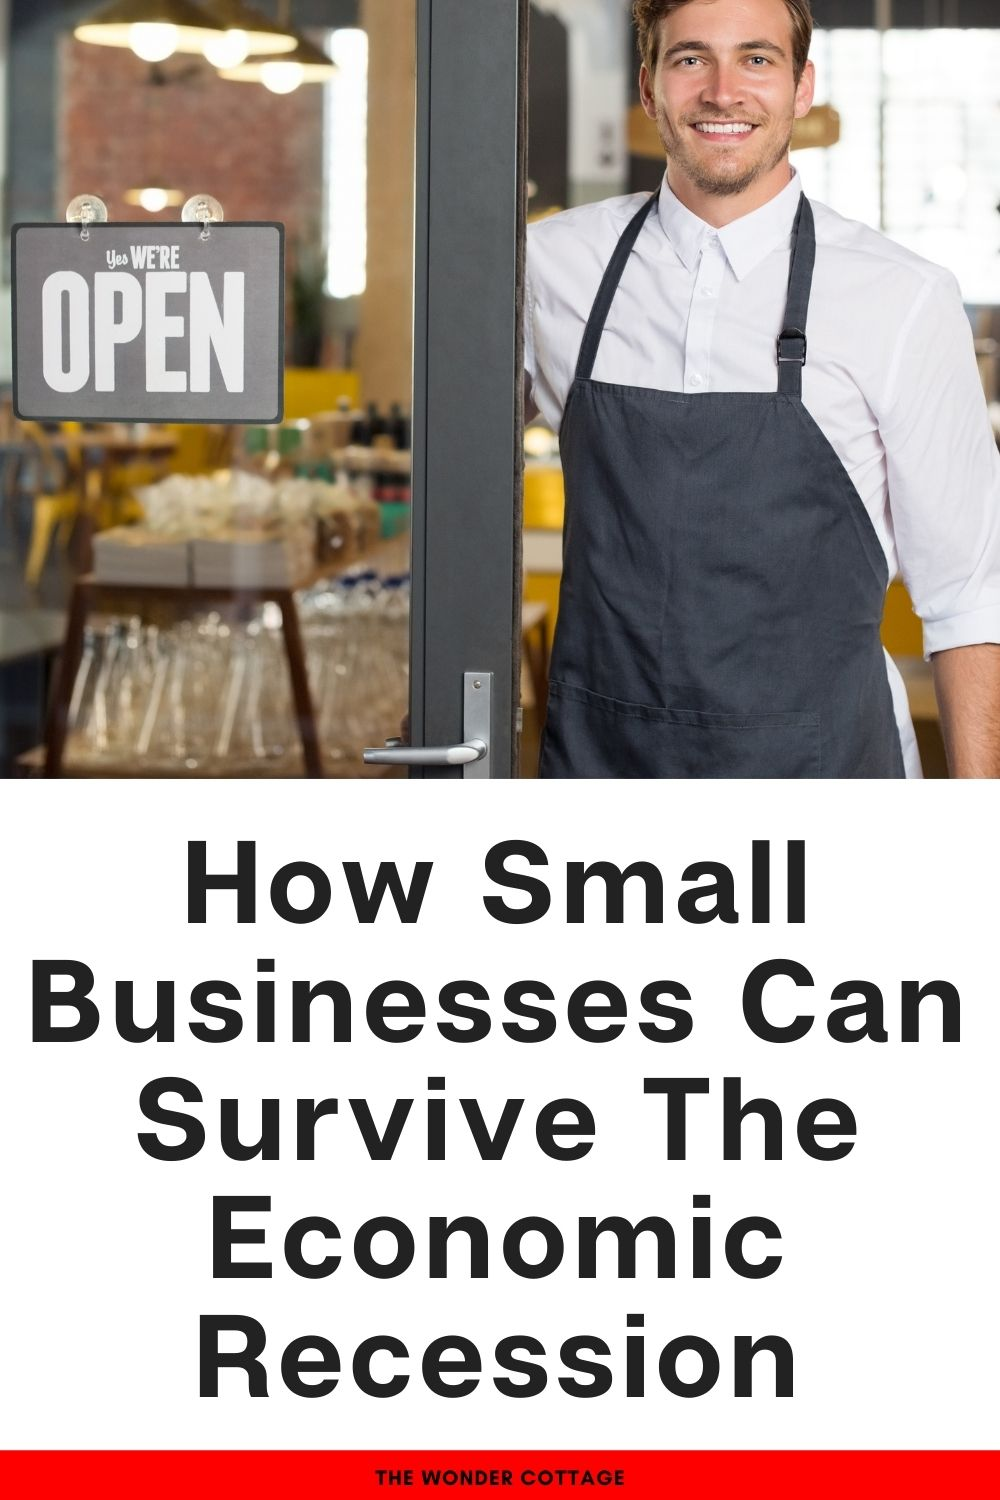 how small businesses can survive the economic recession